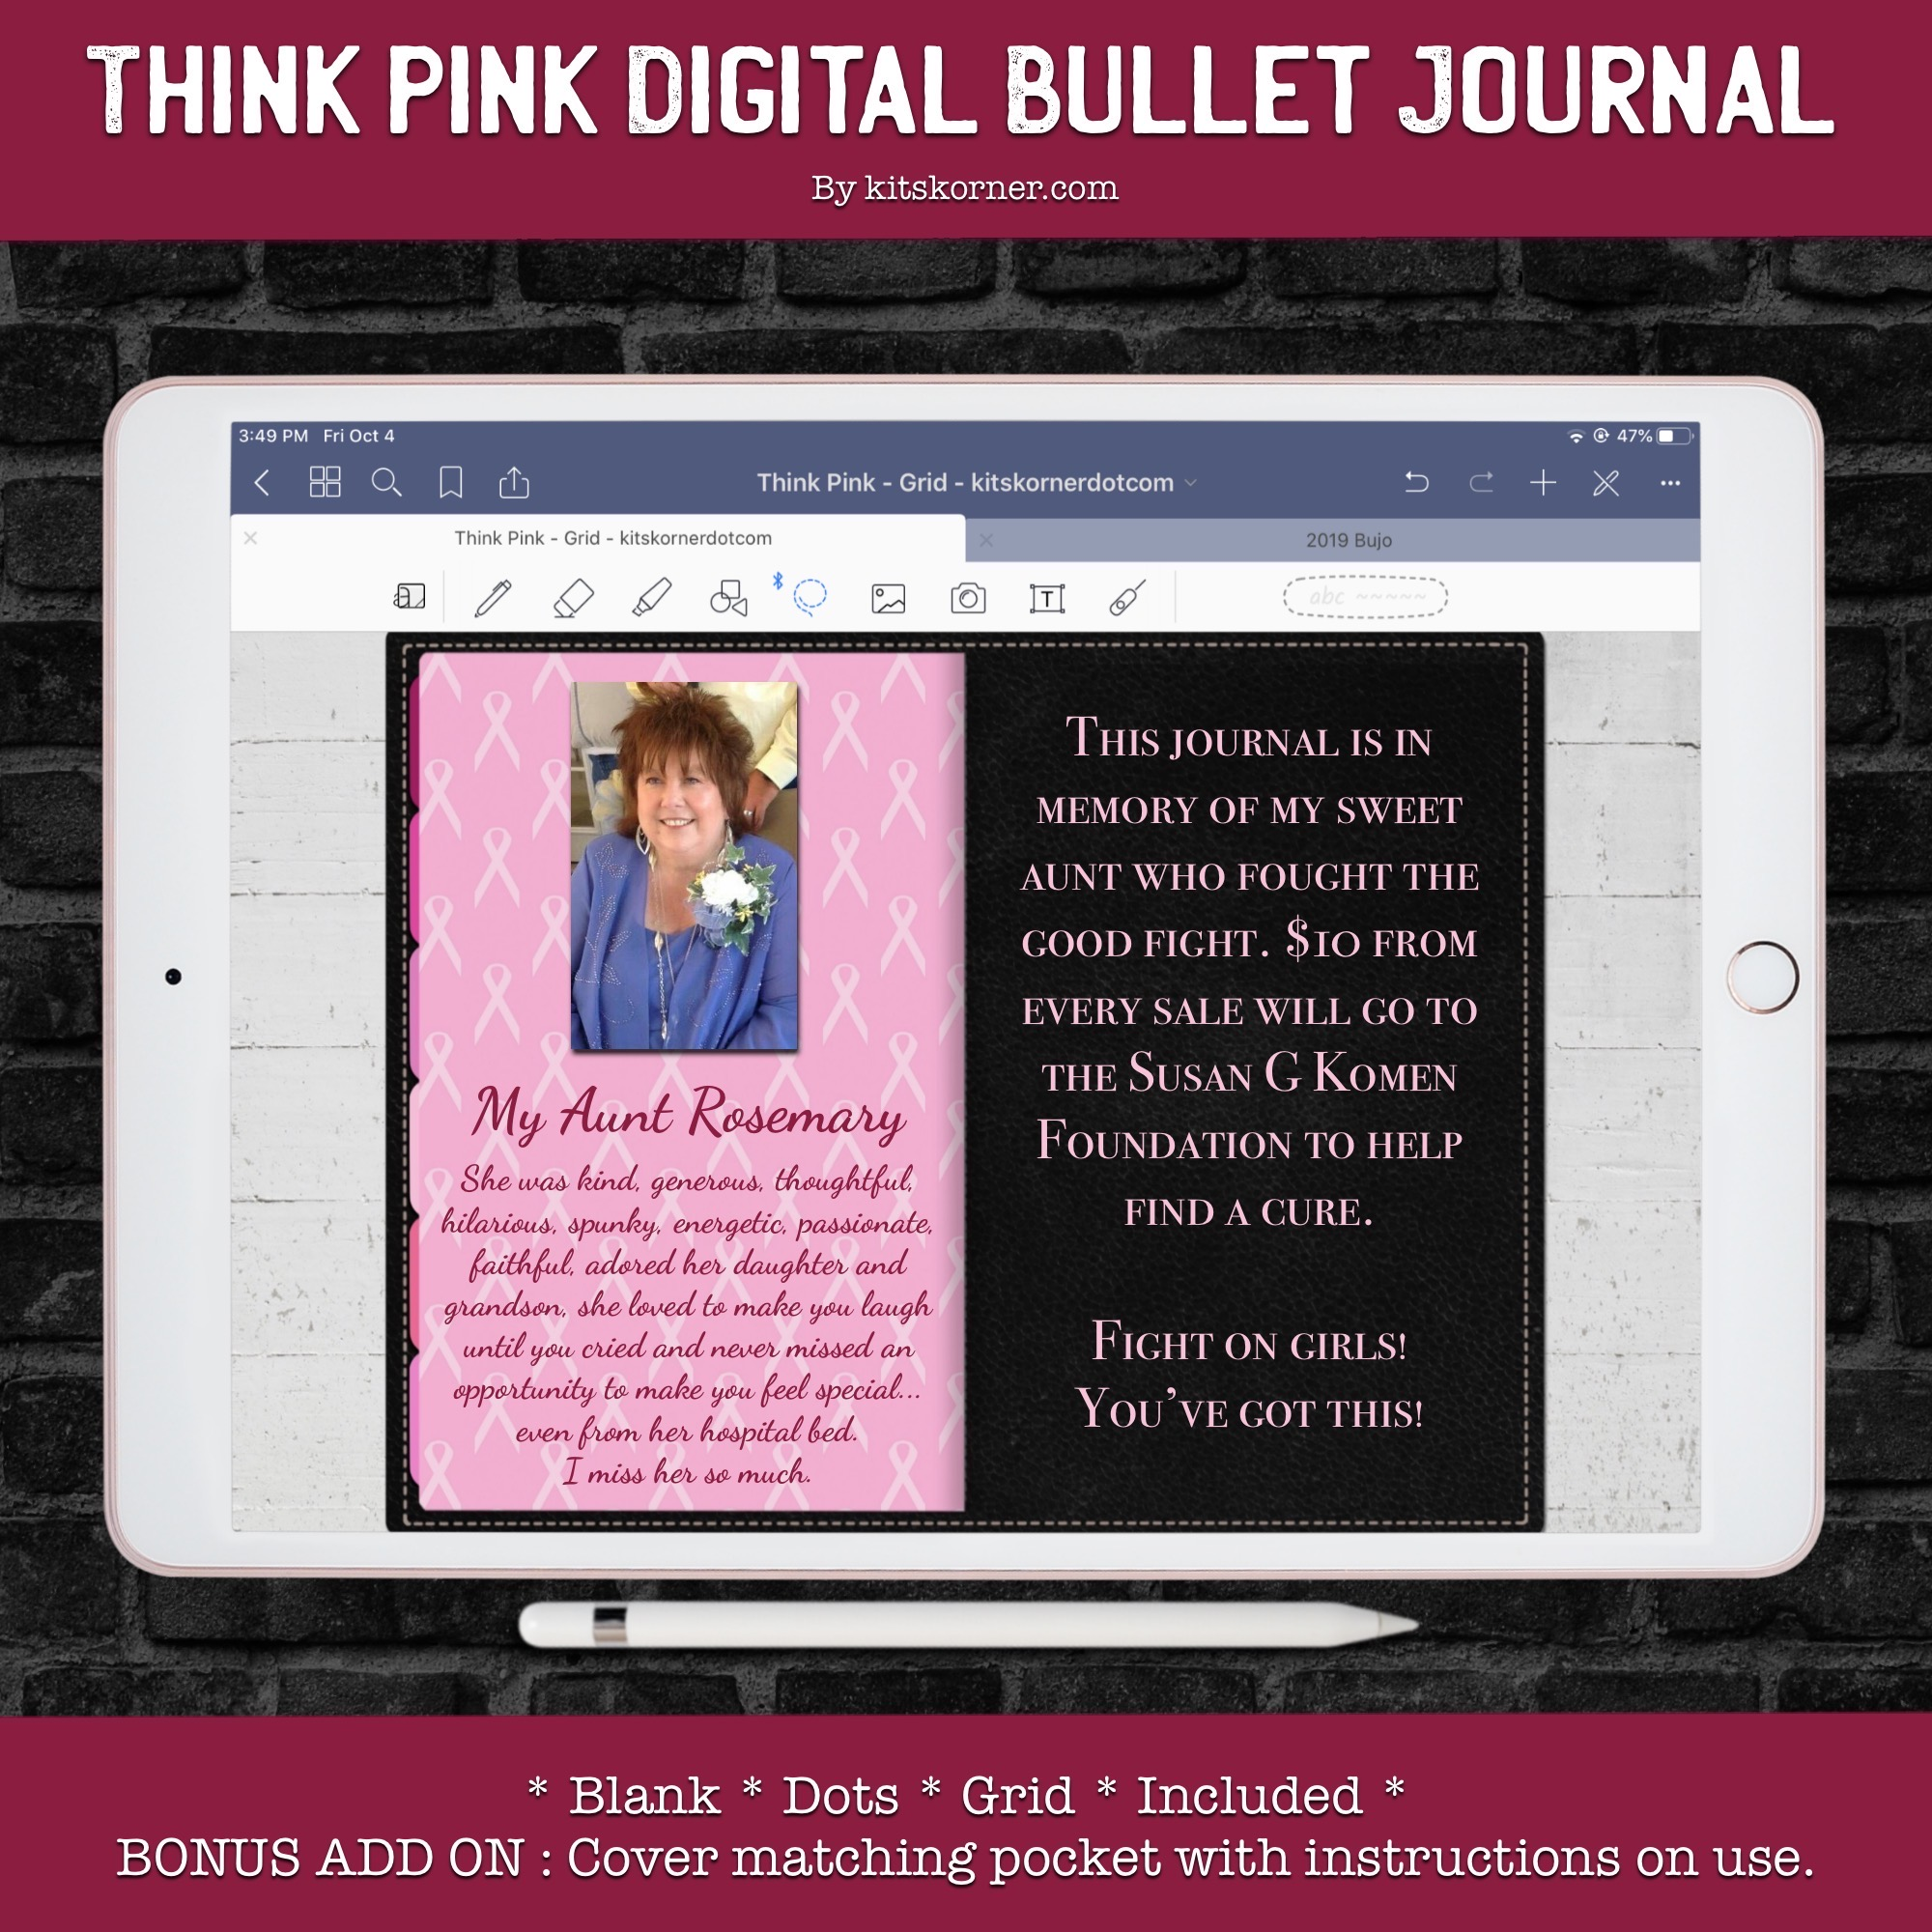 Think Pink Digital Bullet Journal